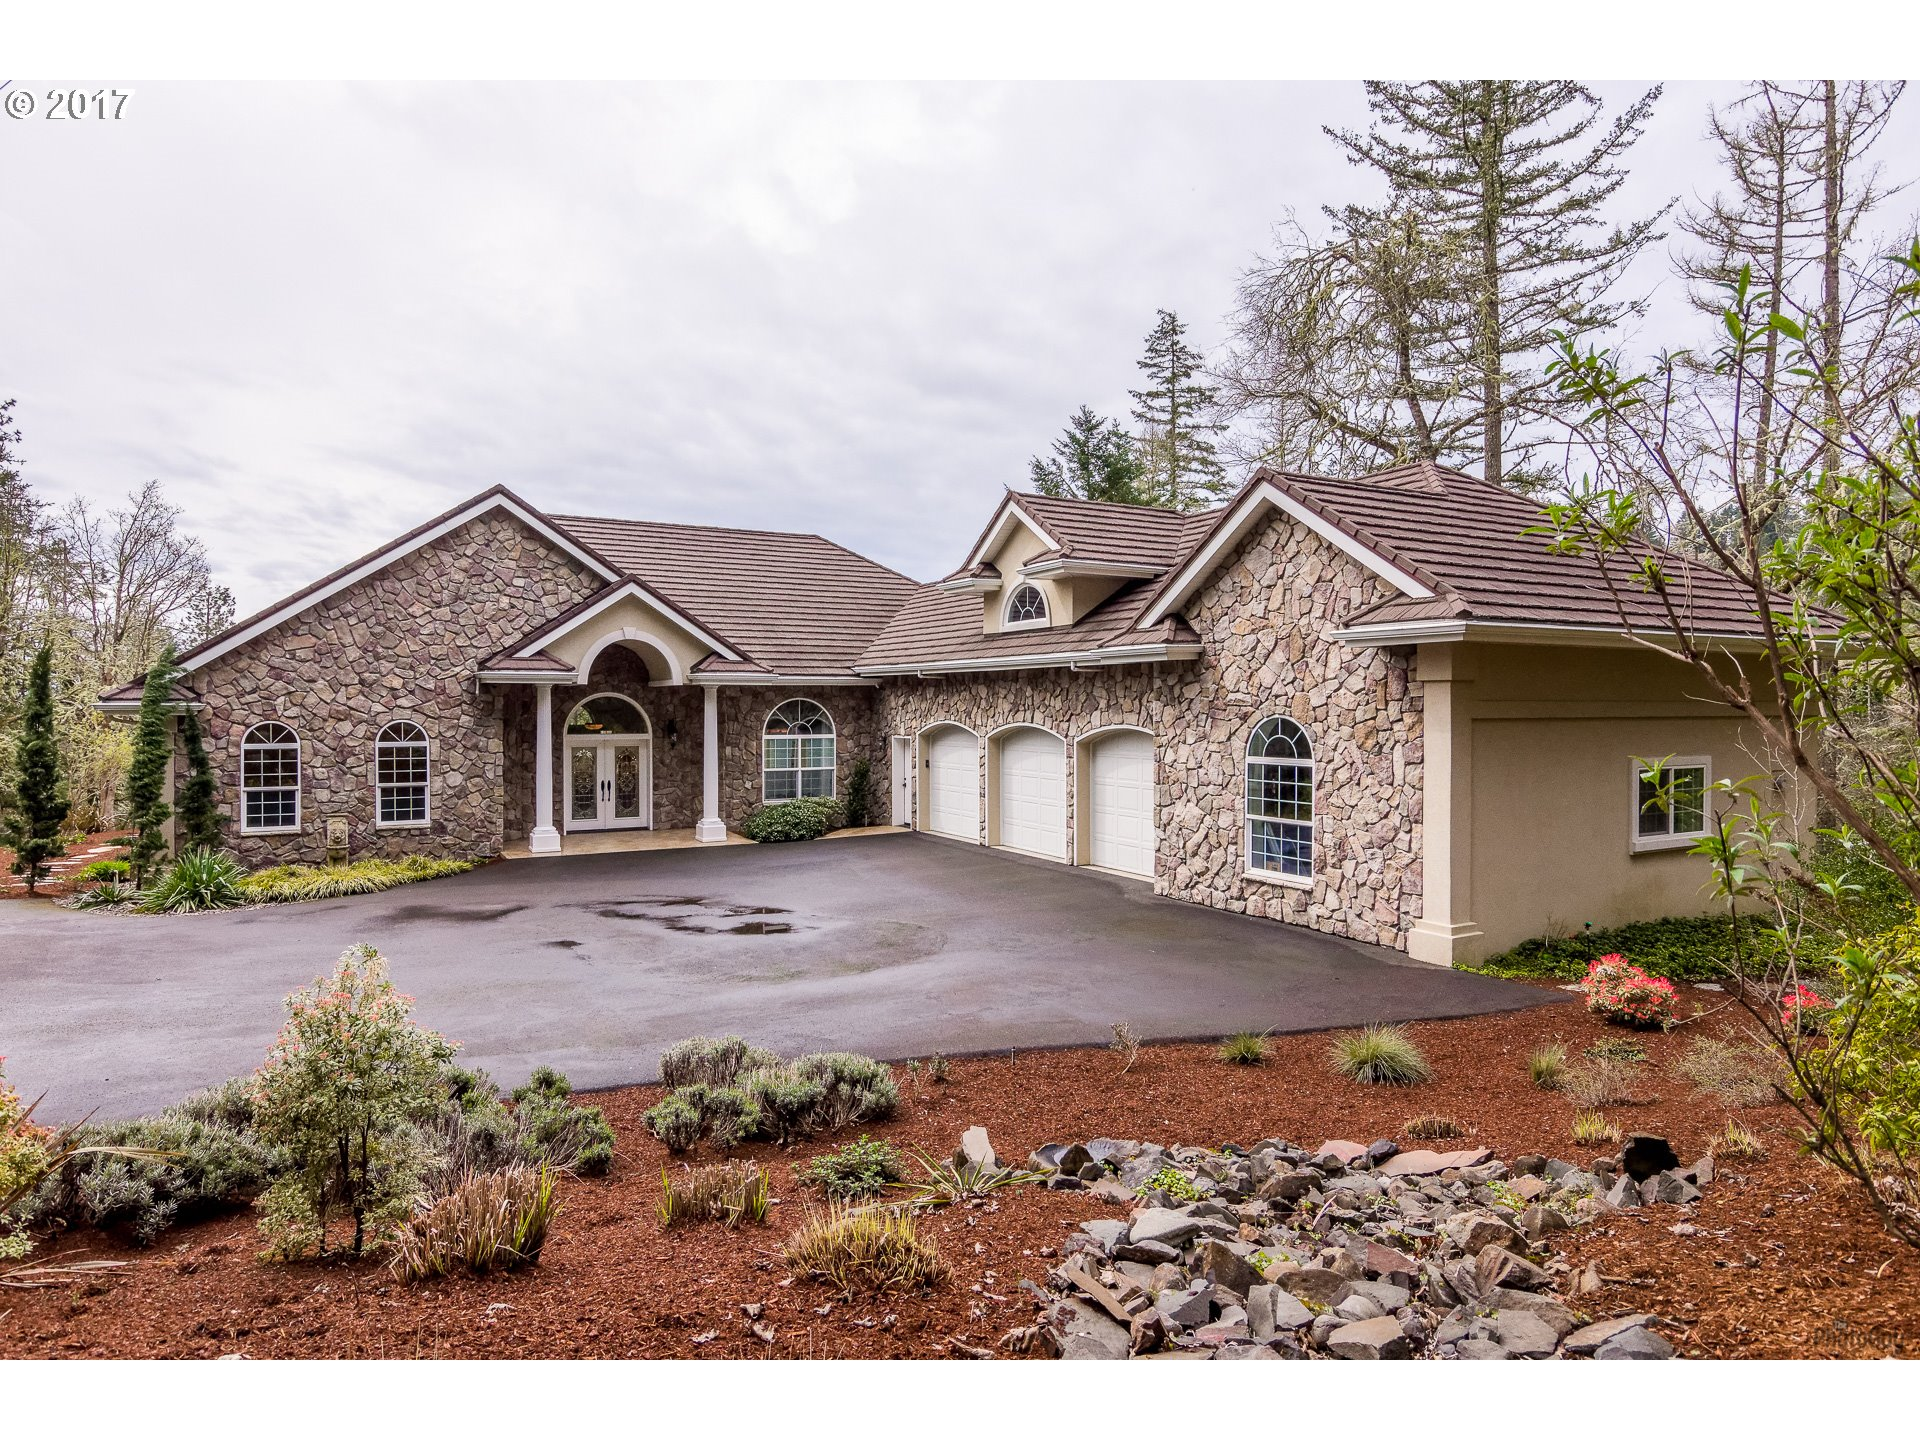 32825 KESTREL LN, Eugene, OR 97405